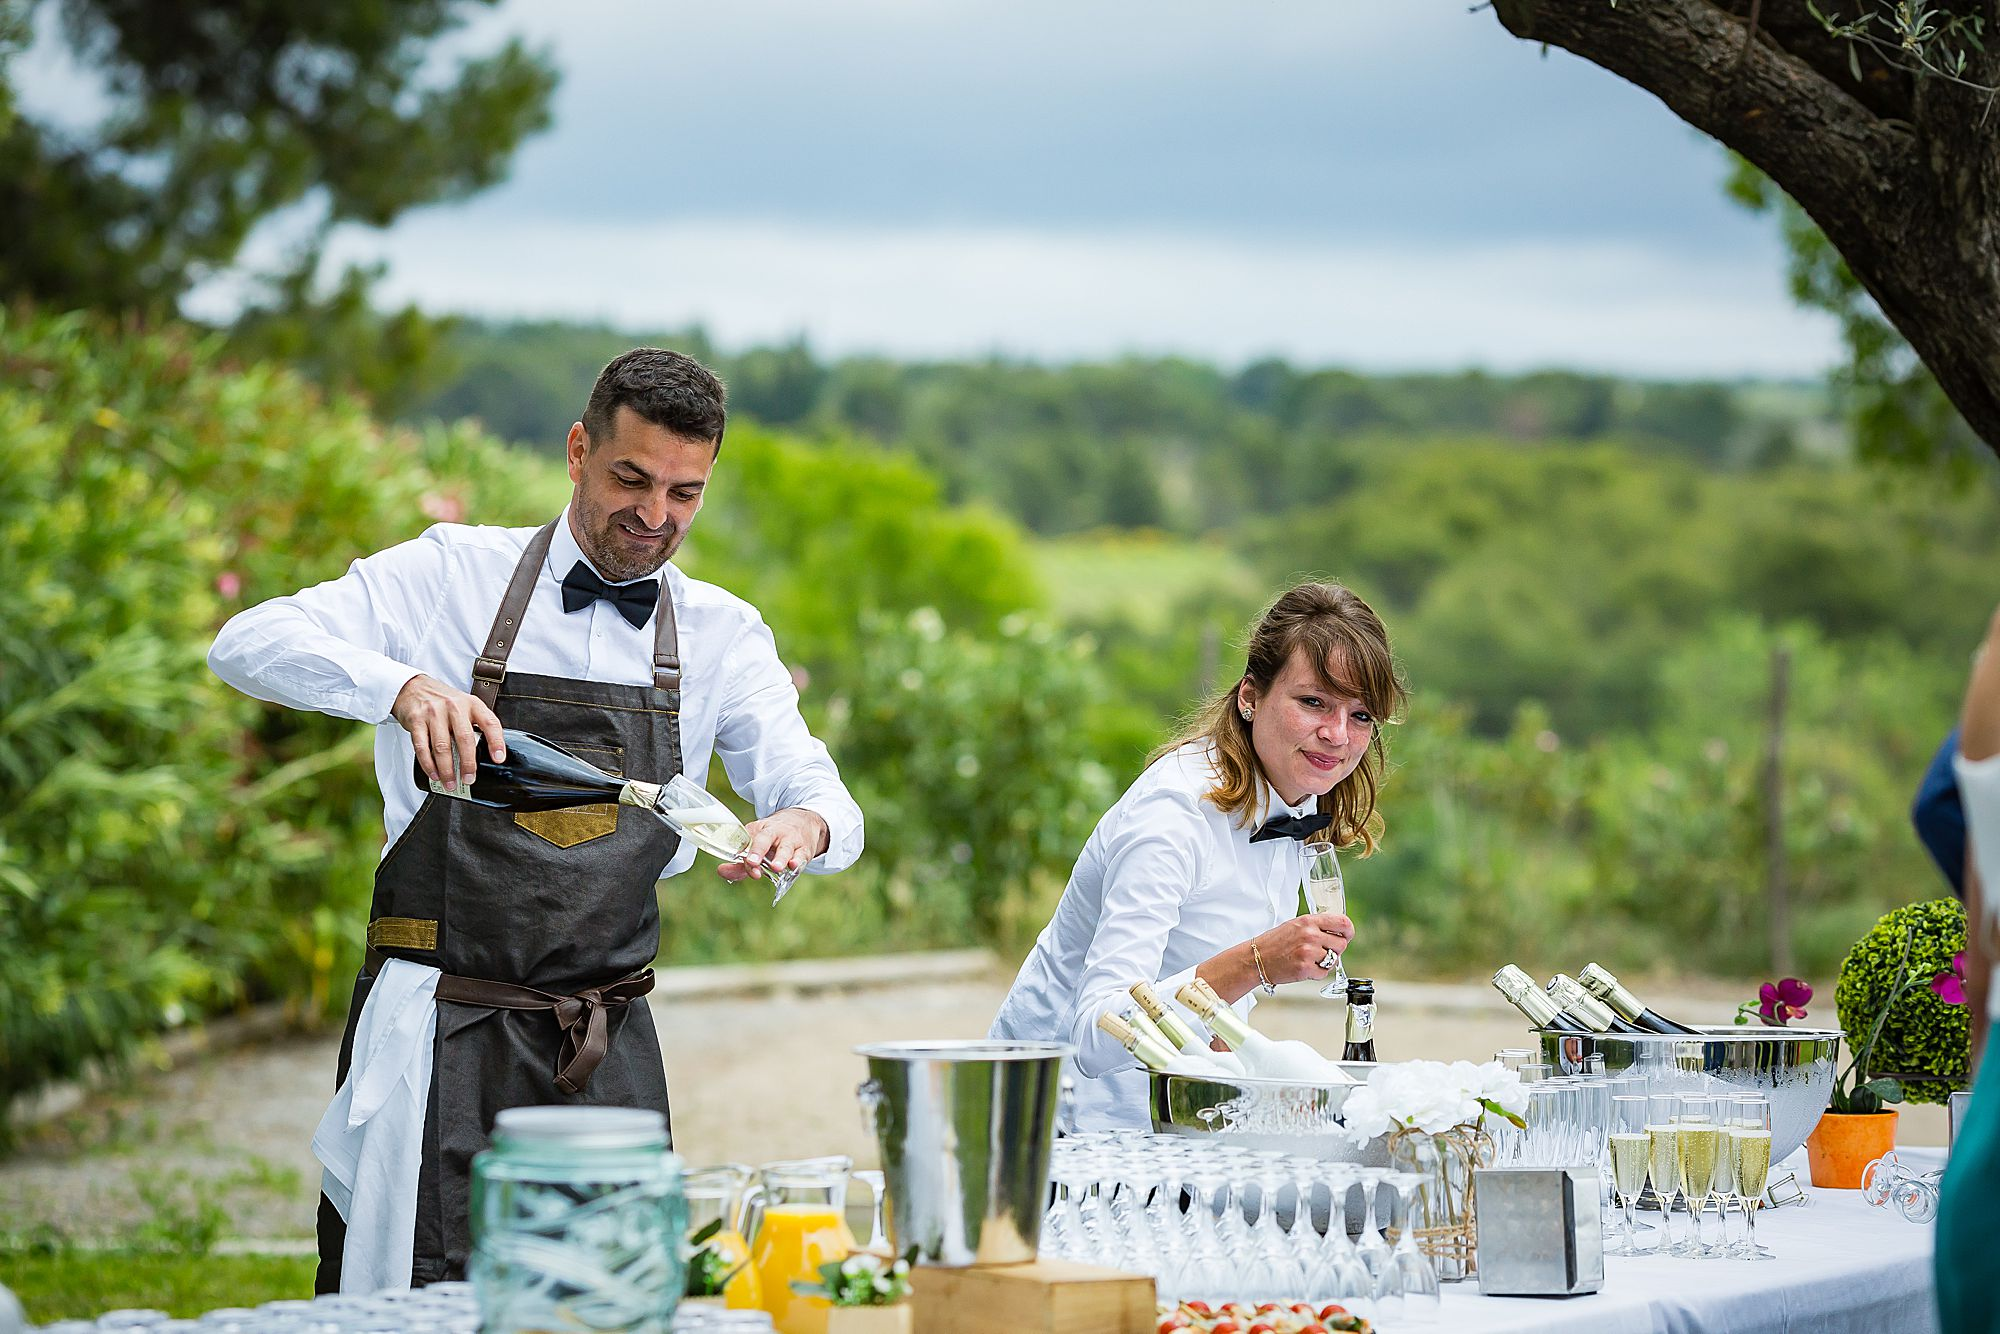 Domaine de la Grangette wedding caterer